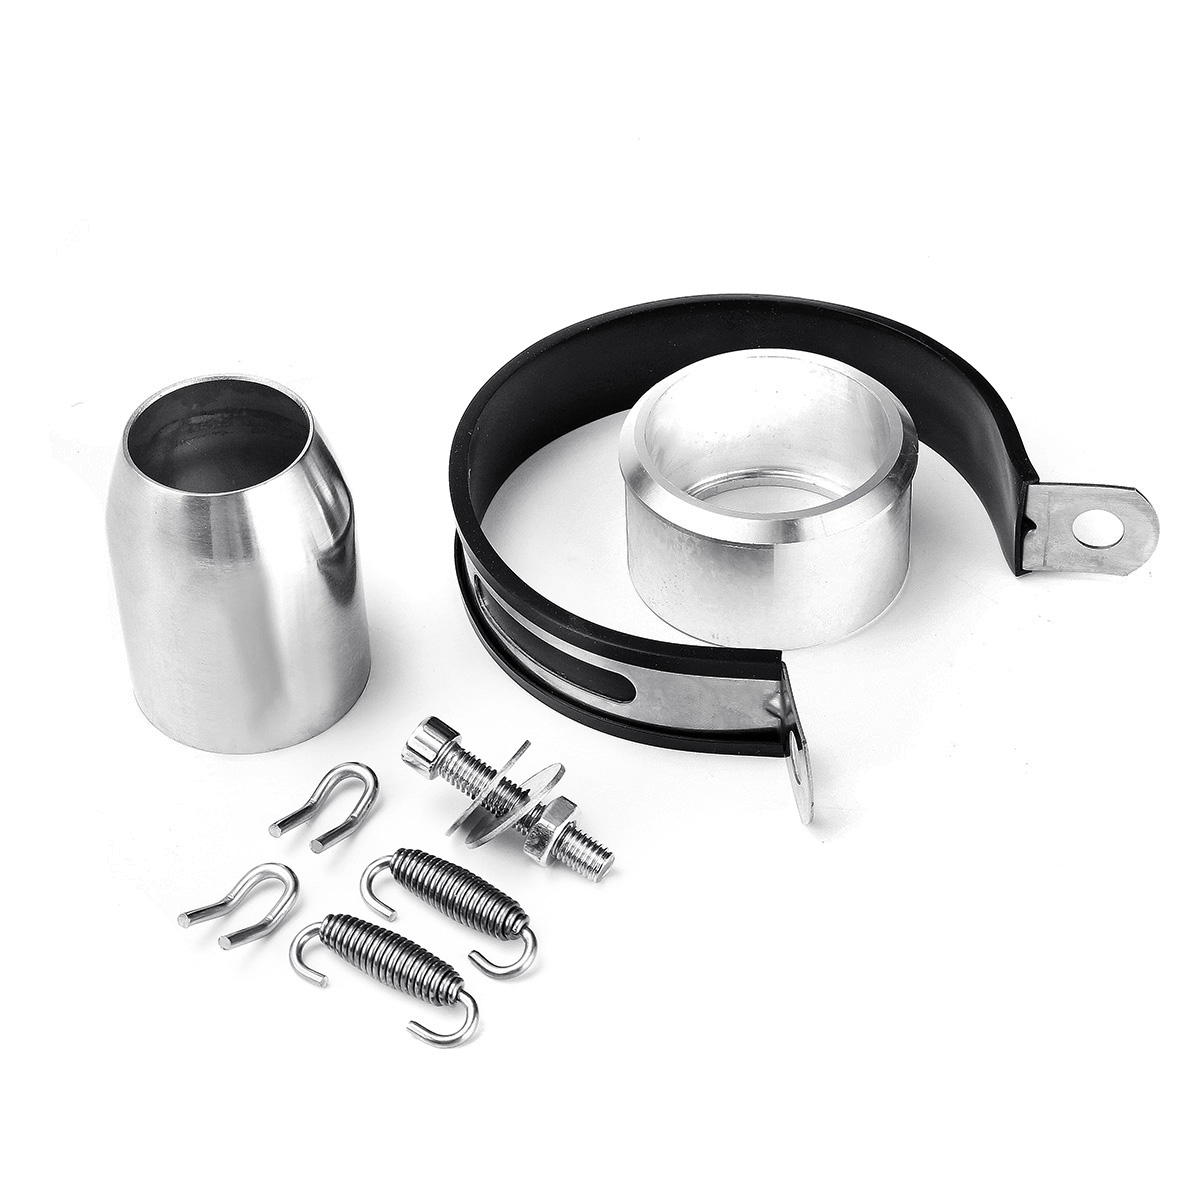 61mm Motorcycle Stainless Steel Exhaust Muffler Pipe Kit For R1 CBR1000 s1000rr